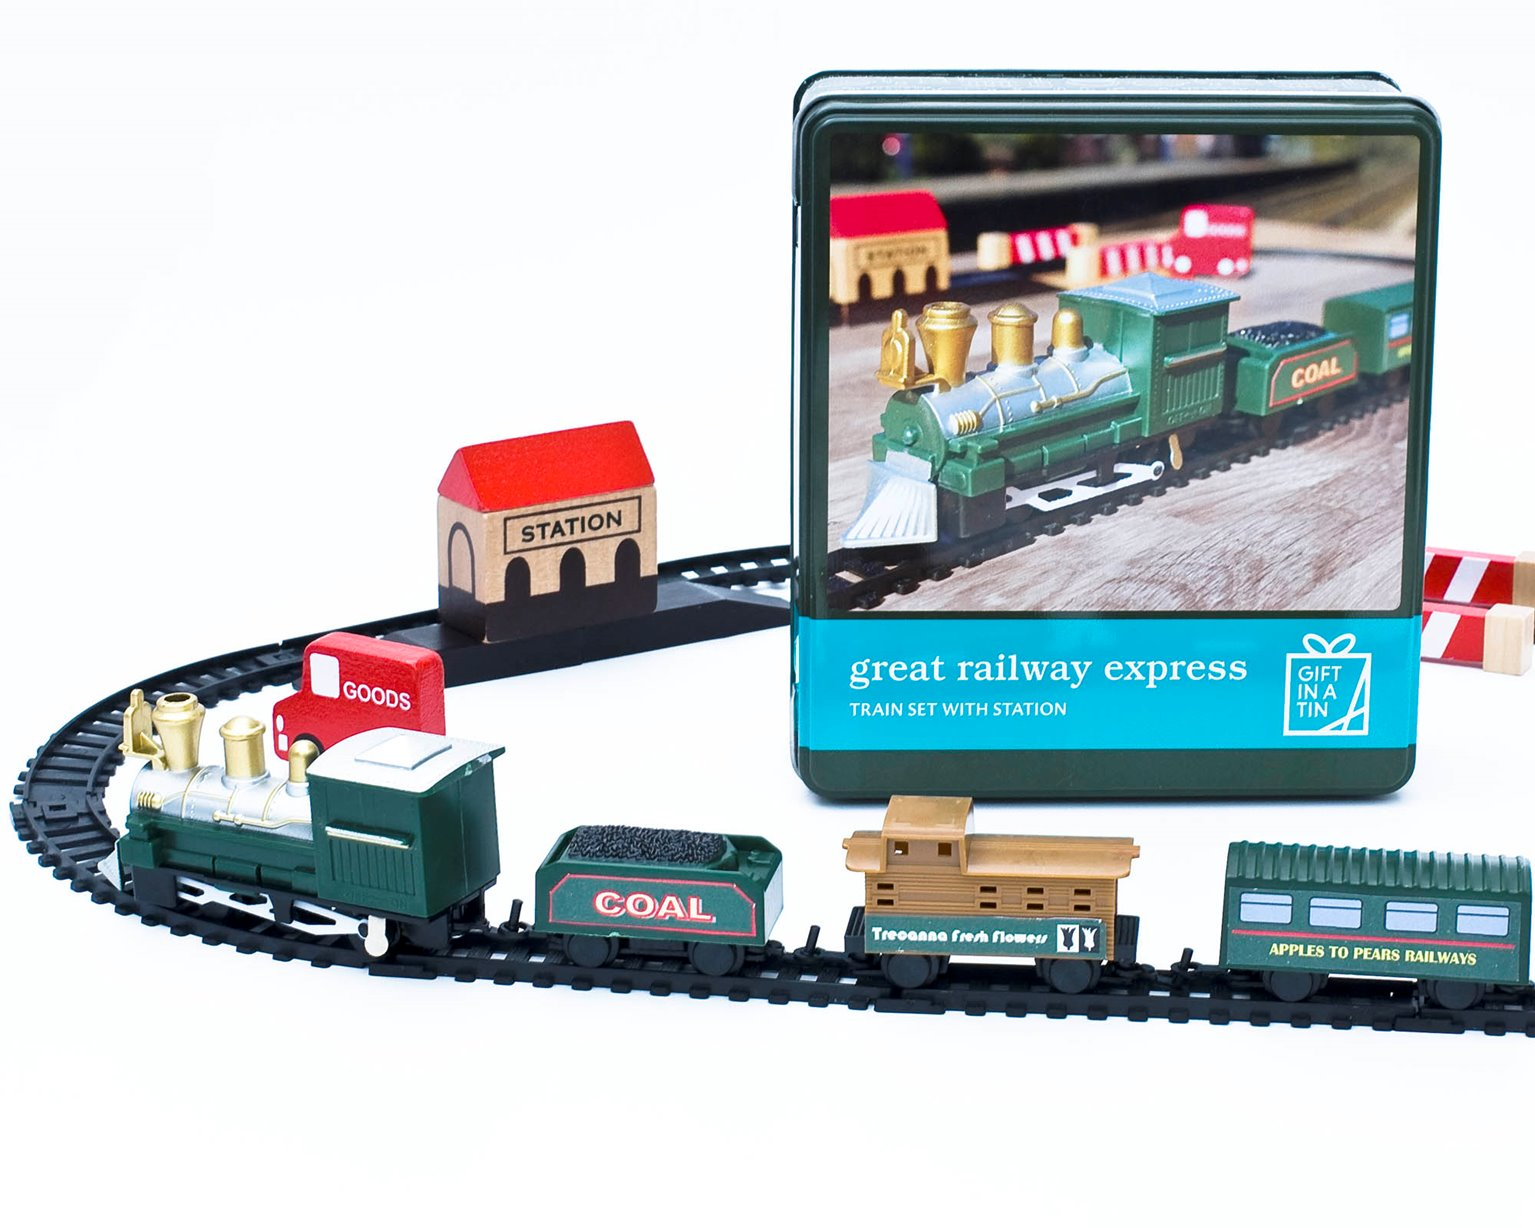 The Great Railway Express Gift in a Tin Train Set